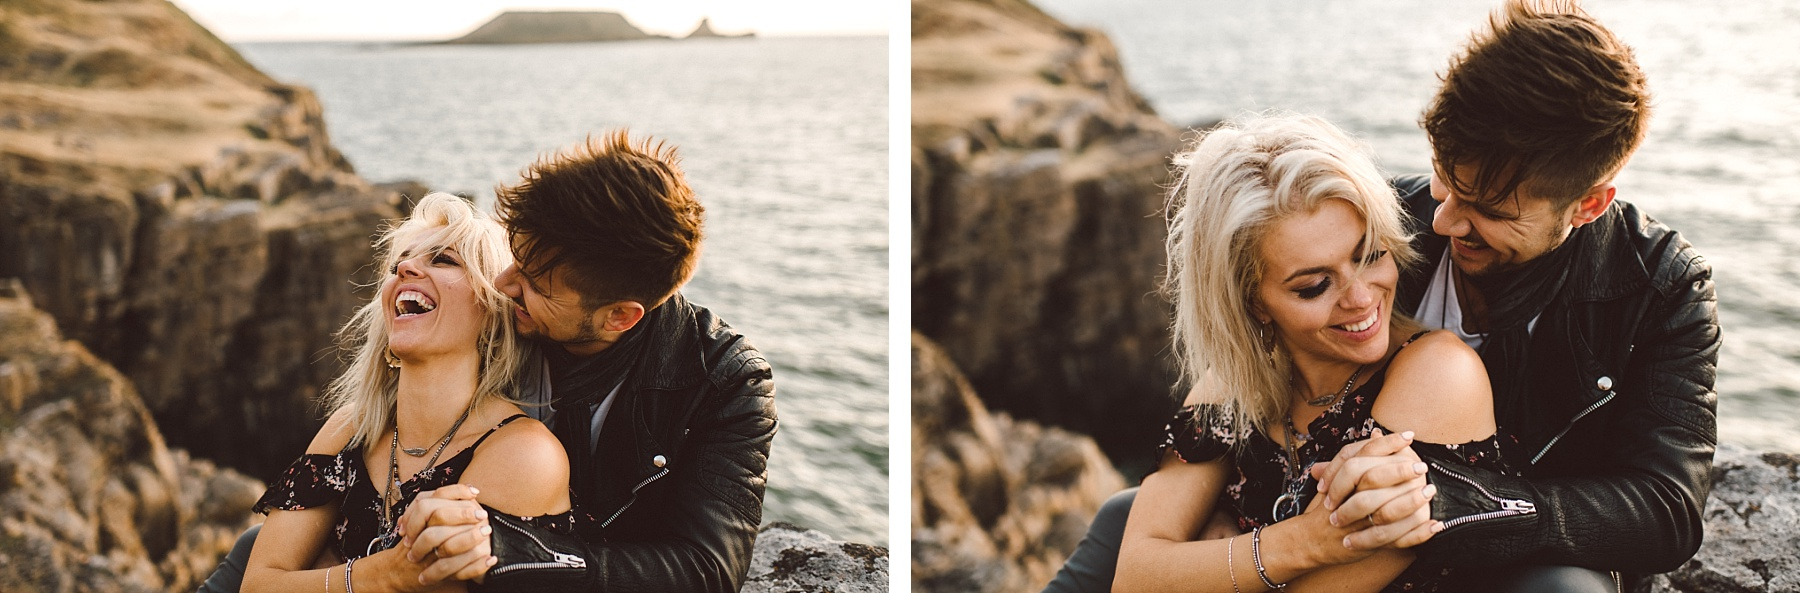 Engagement shoot photography by South Wales wedding photographer